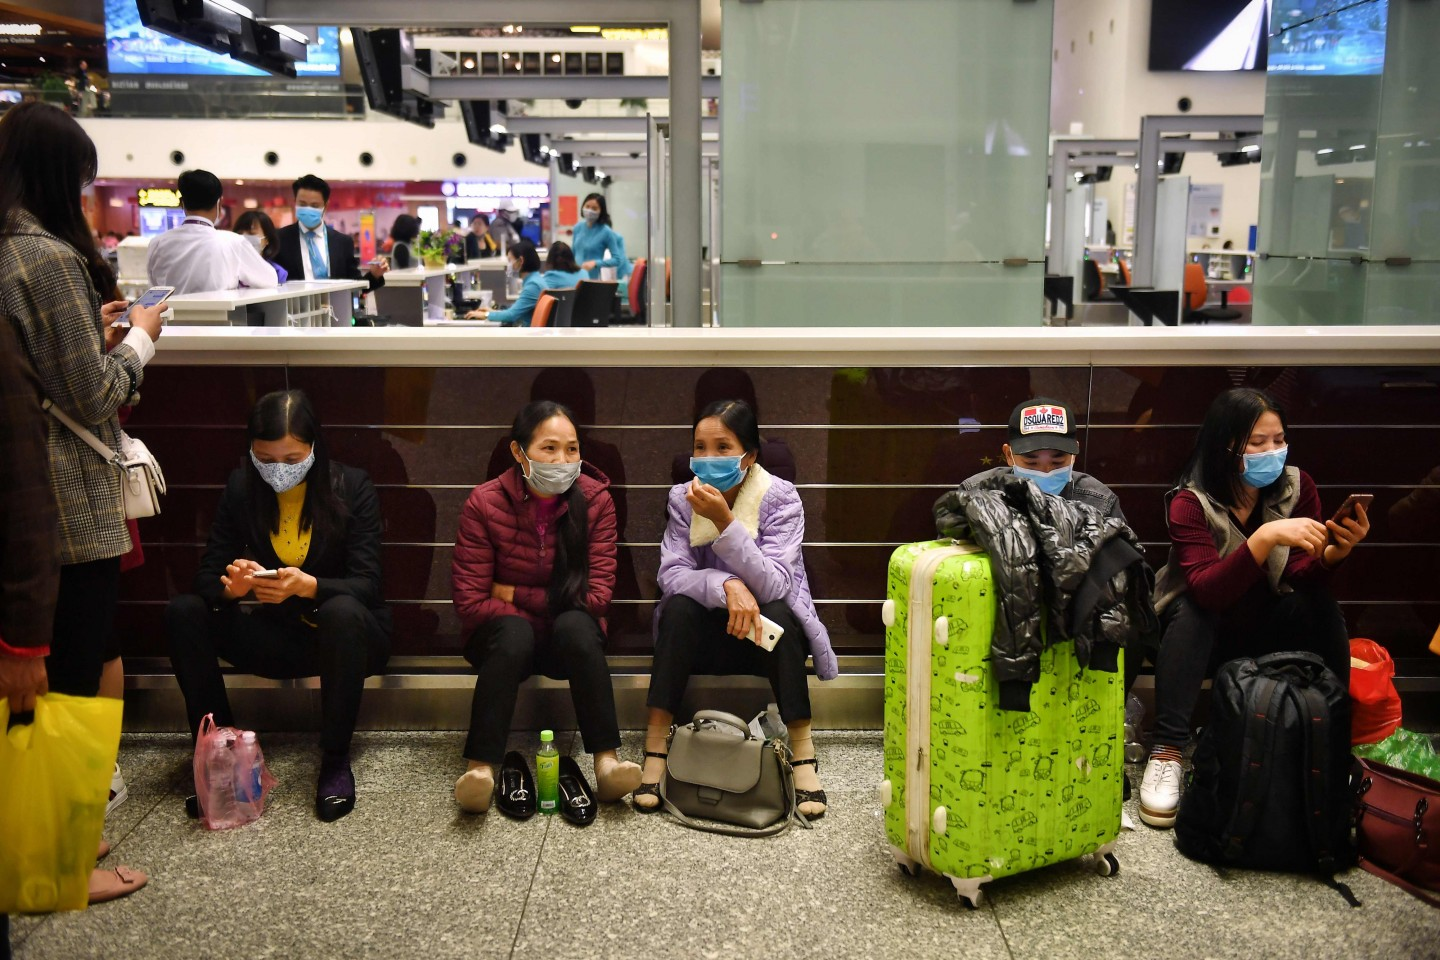 Passengers wear protective facemasks in the departure hall of Noi Bai International Airport in Hanoi on 6 February 2020. Health officials in Vietnam said on 5 February that all foreign passport holders, including those from China, Hong Kong and Macau, that have been to mainland China in the past 14 days will not be permitted to enter Vietnam. (Lillian Suwanrumpha/AFP)